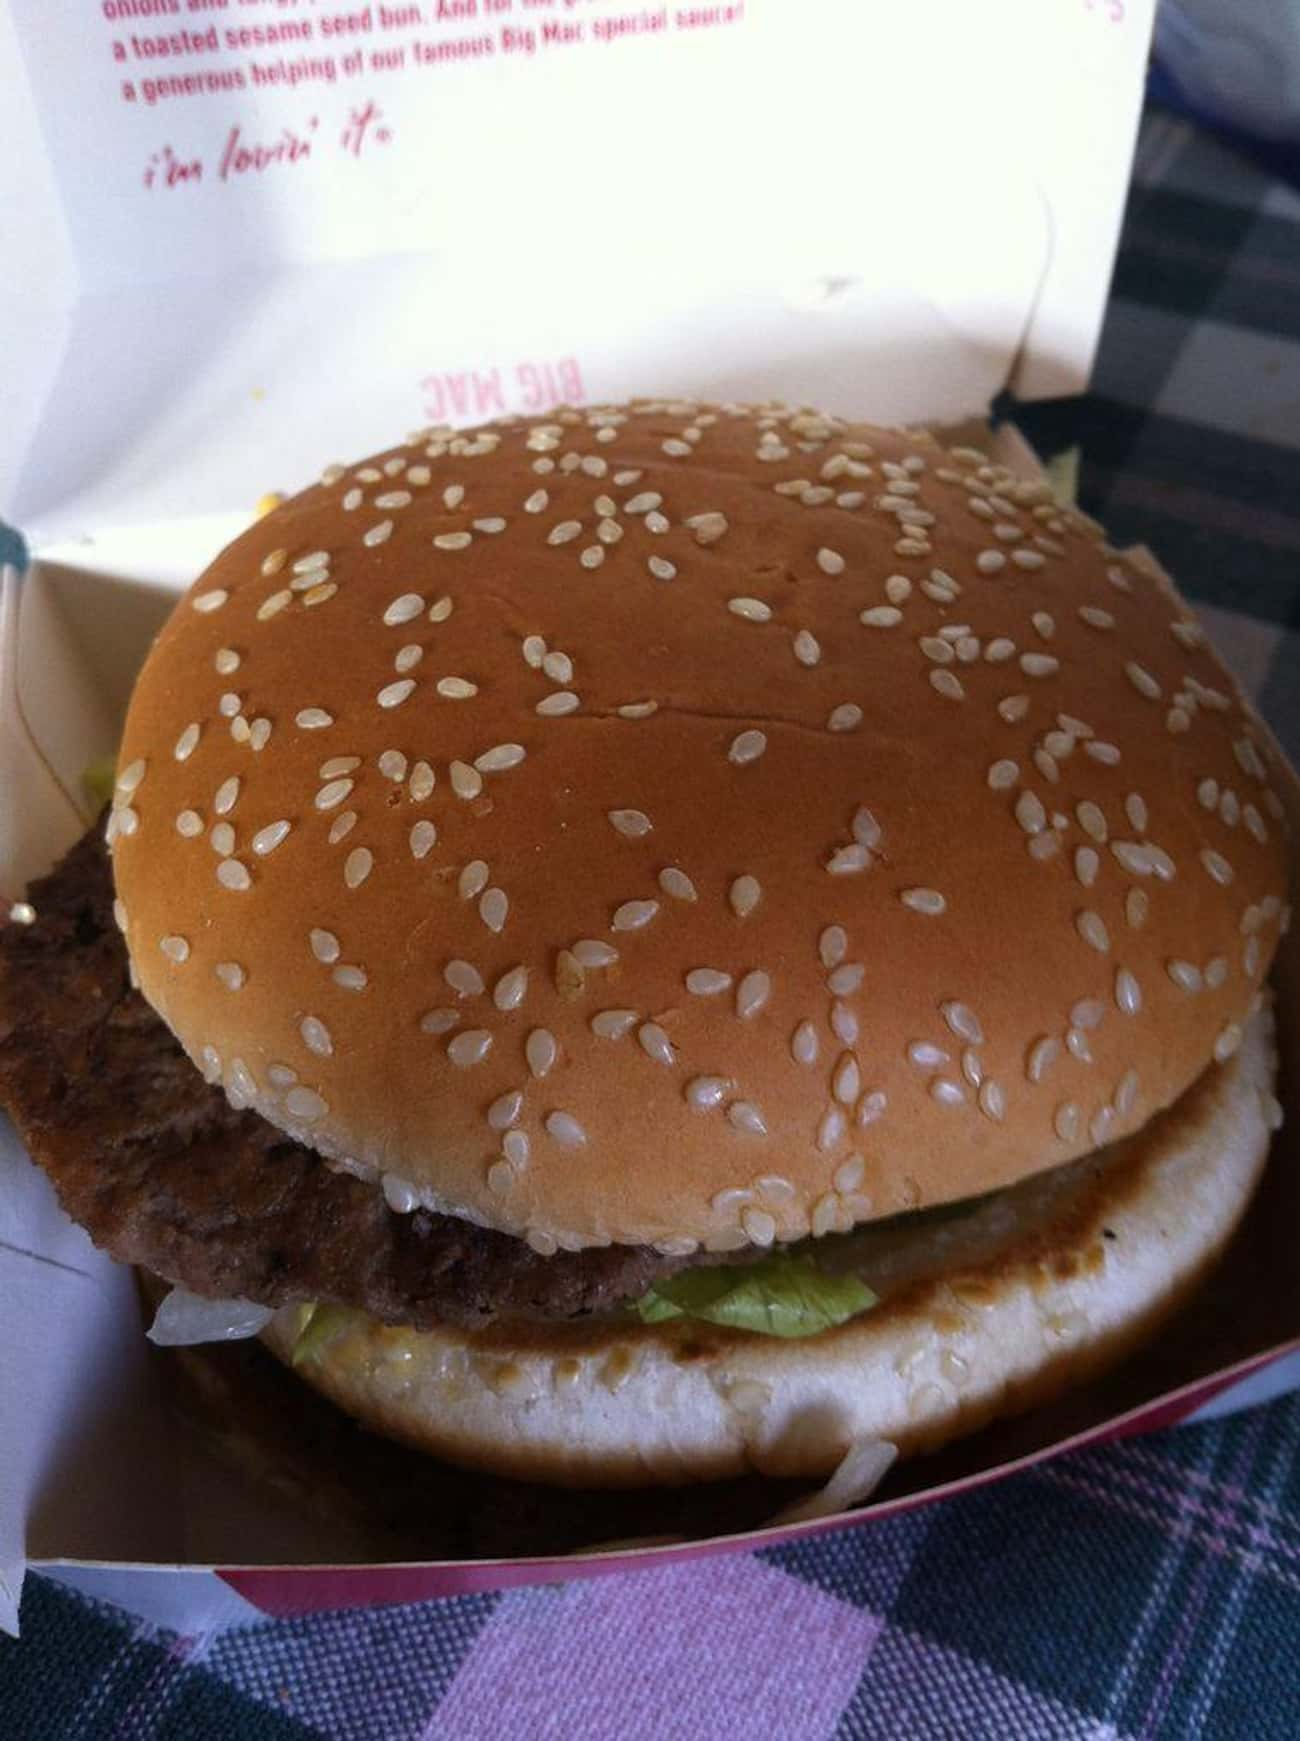 Poor Man's Big Mac is listed (or ranked) 2 on the list McDonald's Secret Menu Items